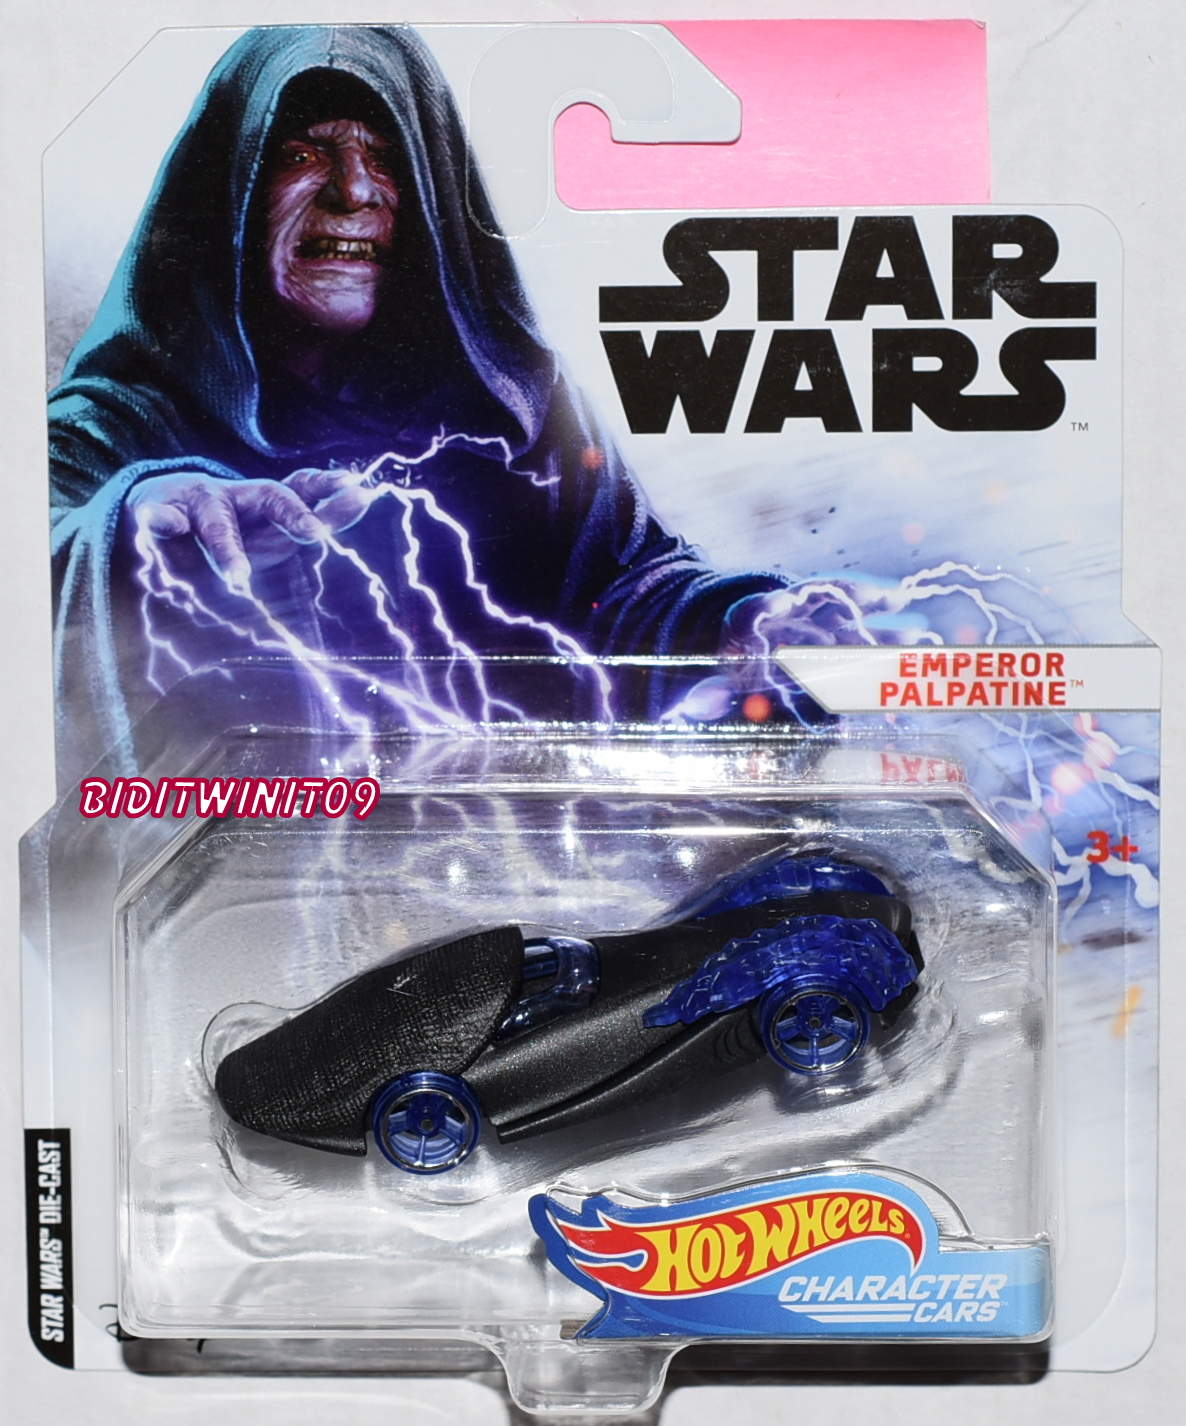 HOT WHEELS STAR WARS EMPEROR PALPATINE CHARACTER CARS E+